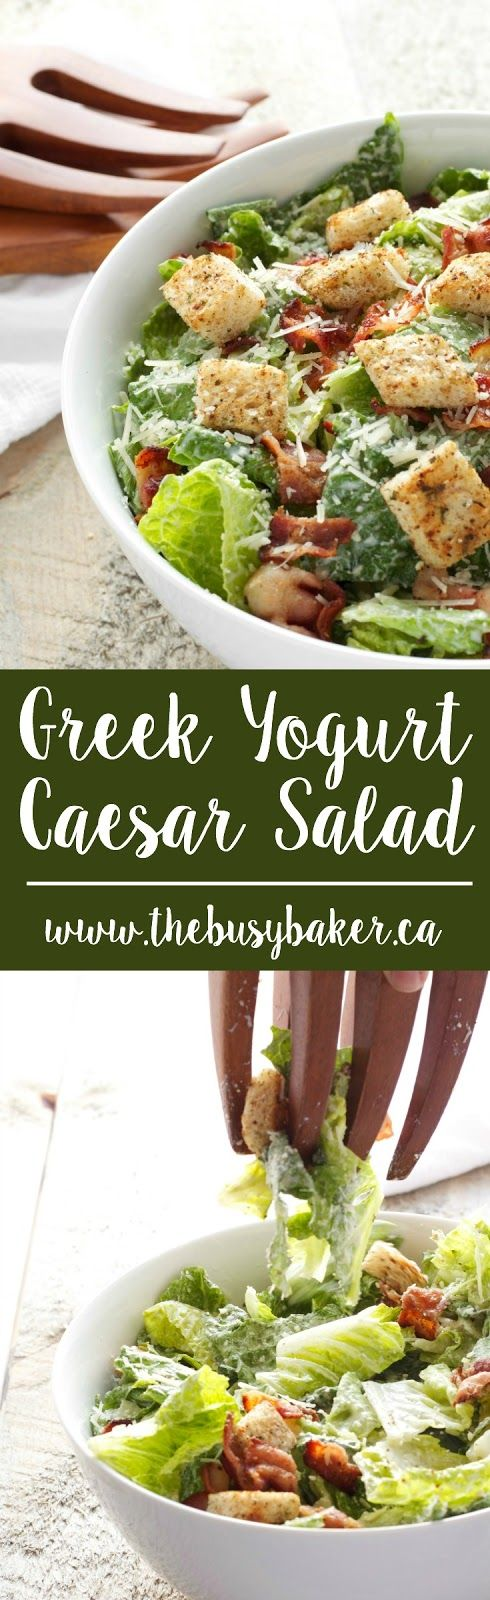 When I discovered the idea of making Caesar salad dressing with Greek yogurt I knew it would be a game-changer. The restaurant-quality Cae...